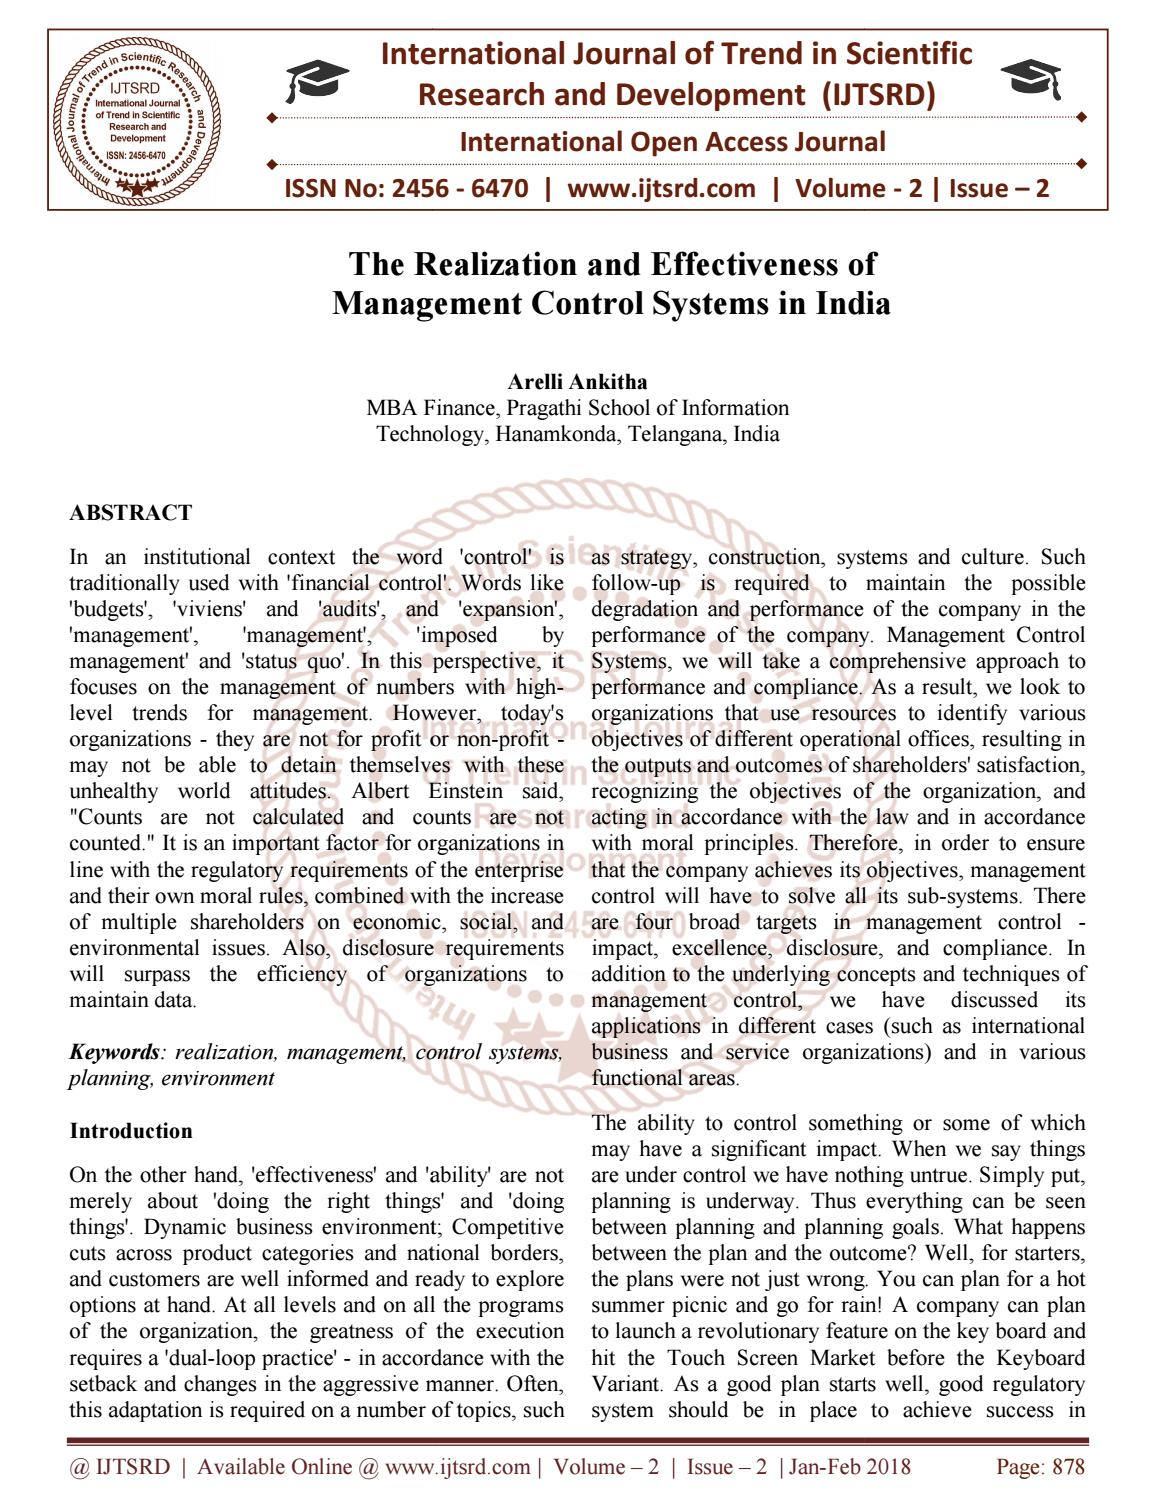 The Realization and Effectiveness of Management Control